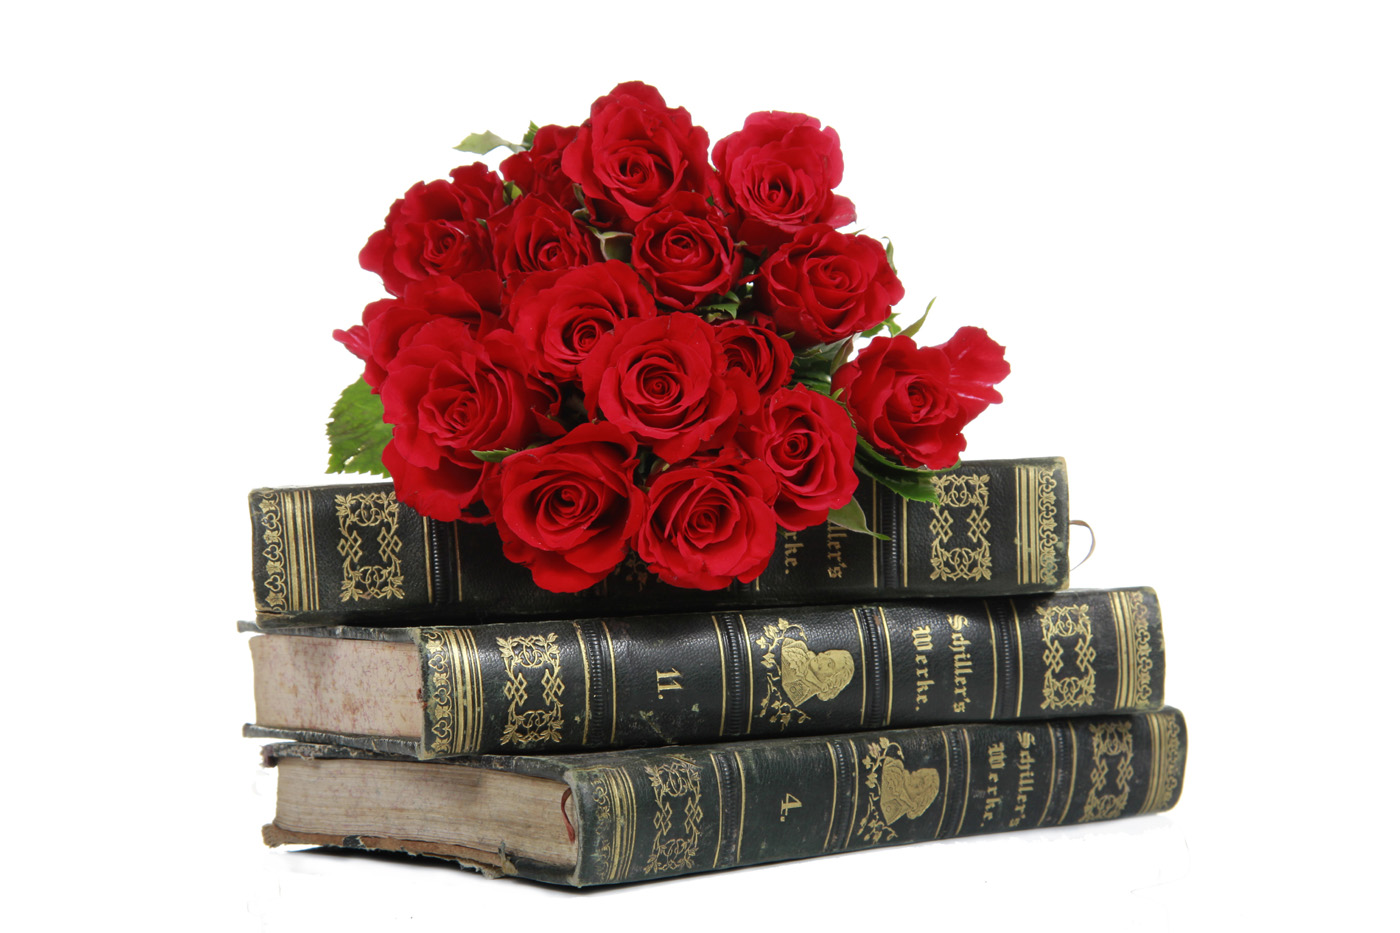 Old books and Roses 31528